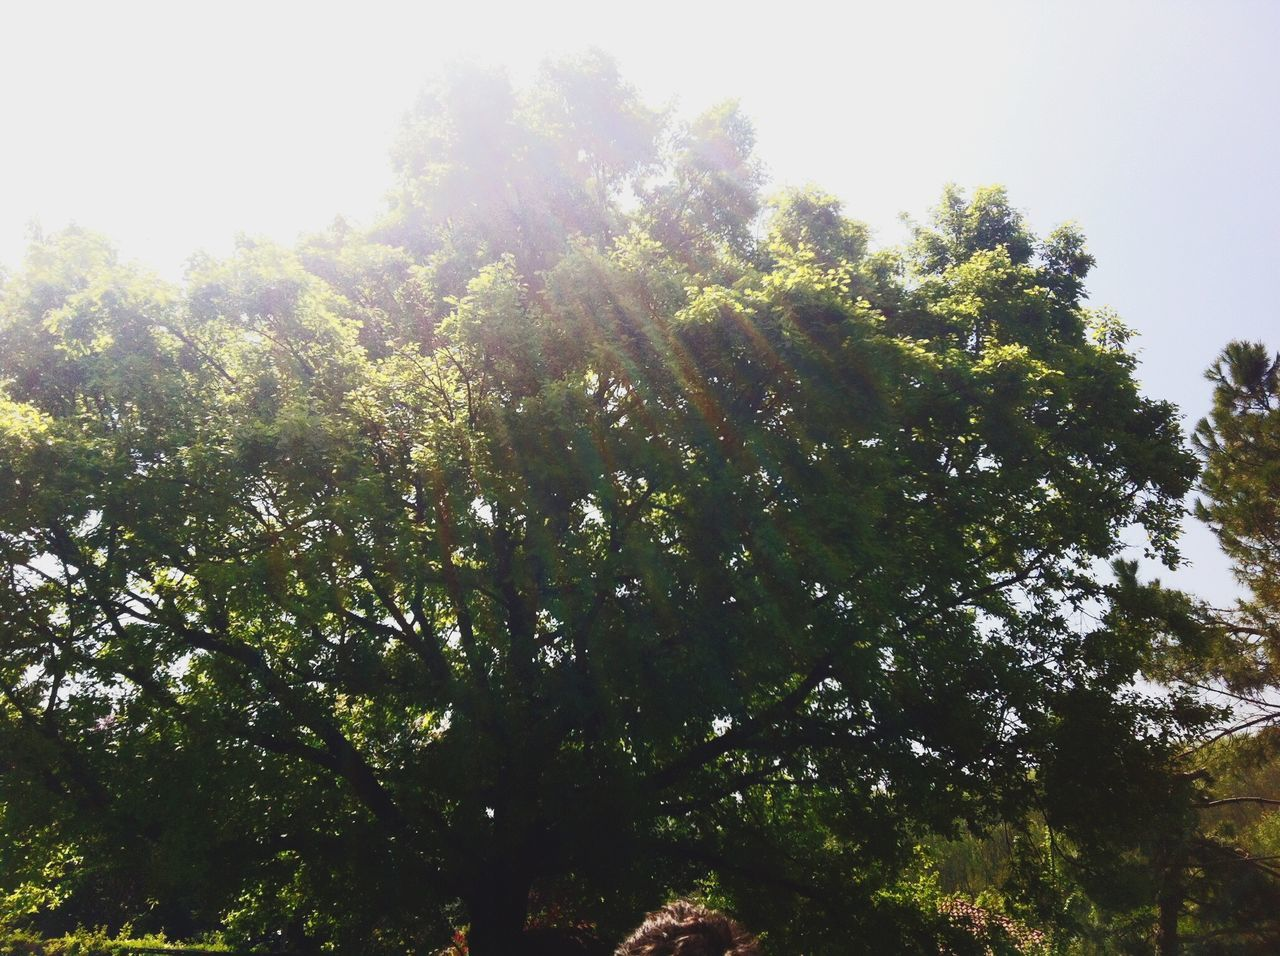 tree, nature, growth, tranquility, no people, low angle view, outdoors, beauty in nature, day, sky